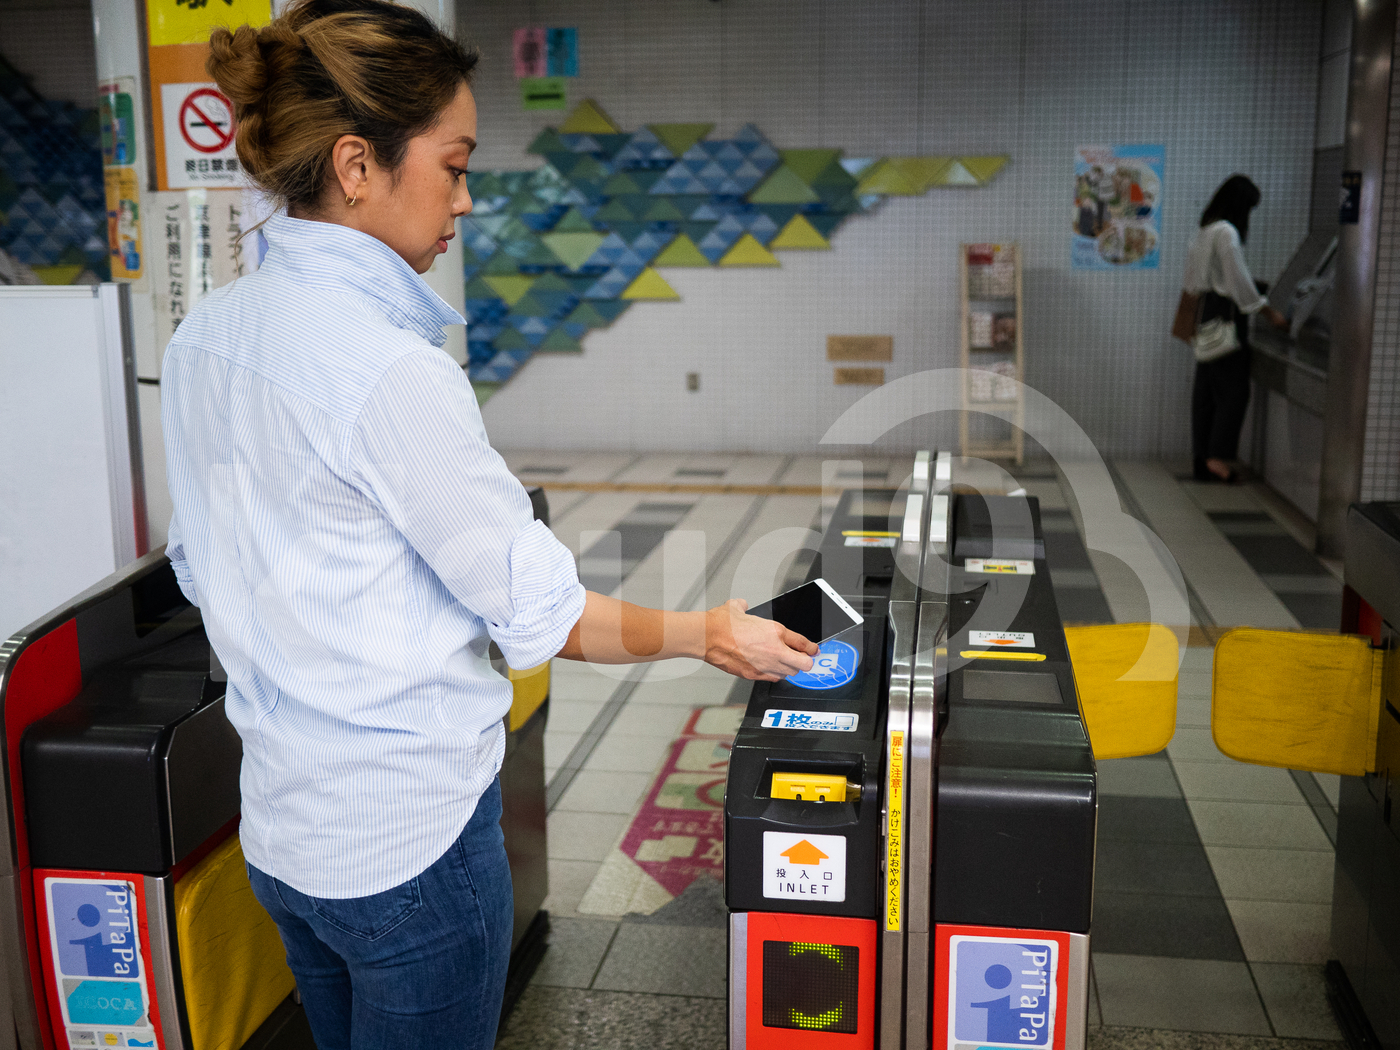 Japanese woman making payment with mobile in public transport